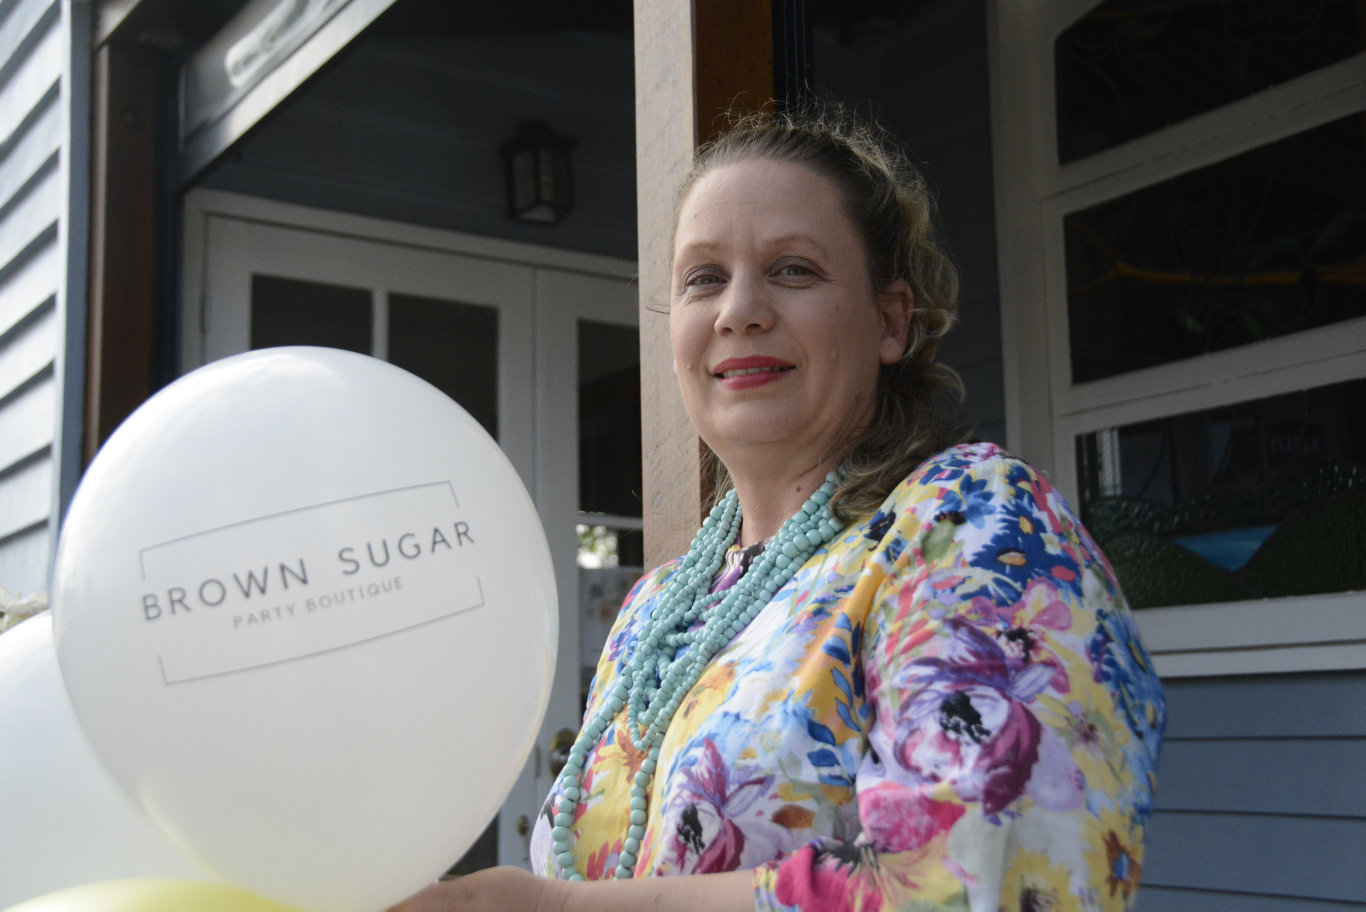 Jessica Brown is getting ready to open Brown Sugar Party Boutique in June